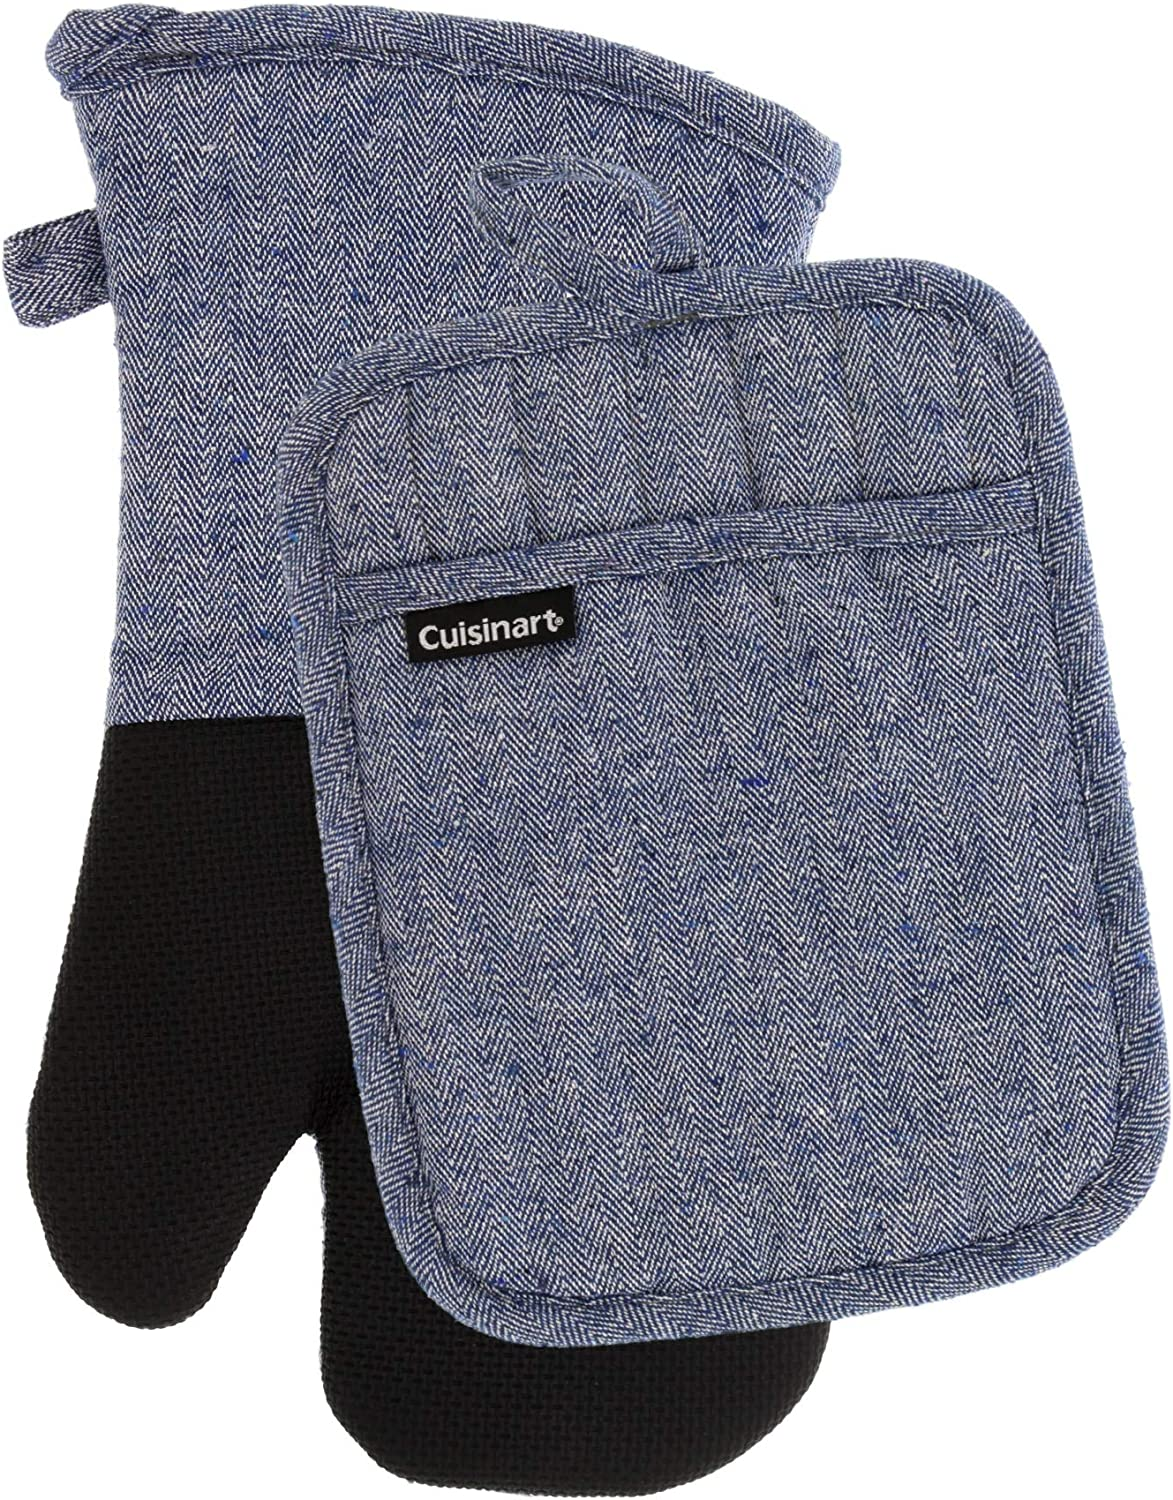 Cuisinart Neoprene Oven Mitts and Potholder Set - Heat Resistant Oven Gloves to Protect Hands and Surfaces with Non-Slip Grip, Hanging Loop - Ideal for Handling Hot Cookware Items - Chevron, Blue